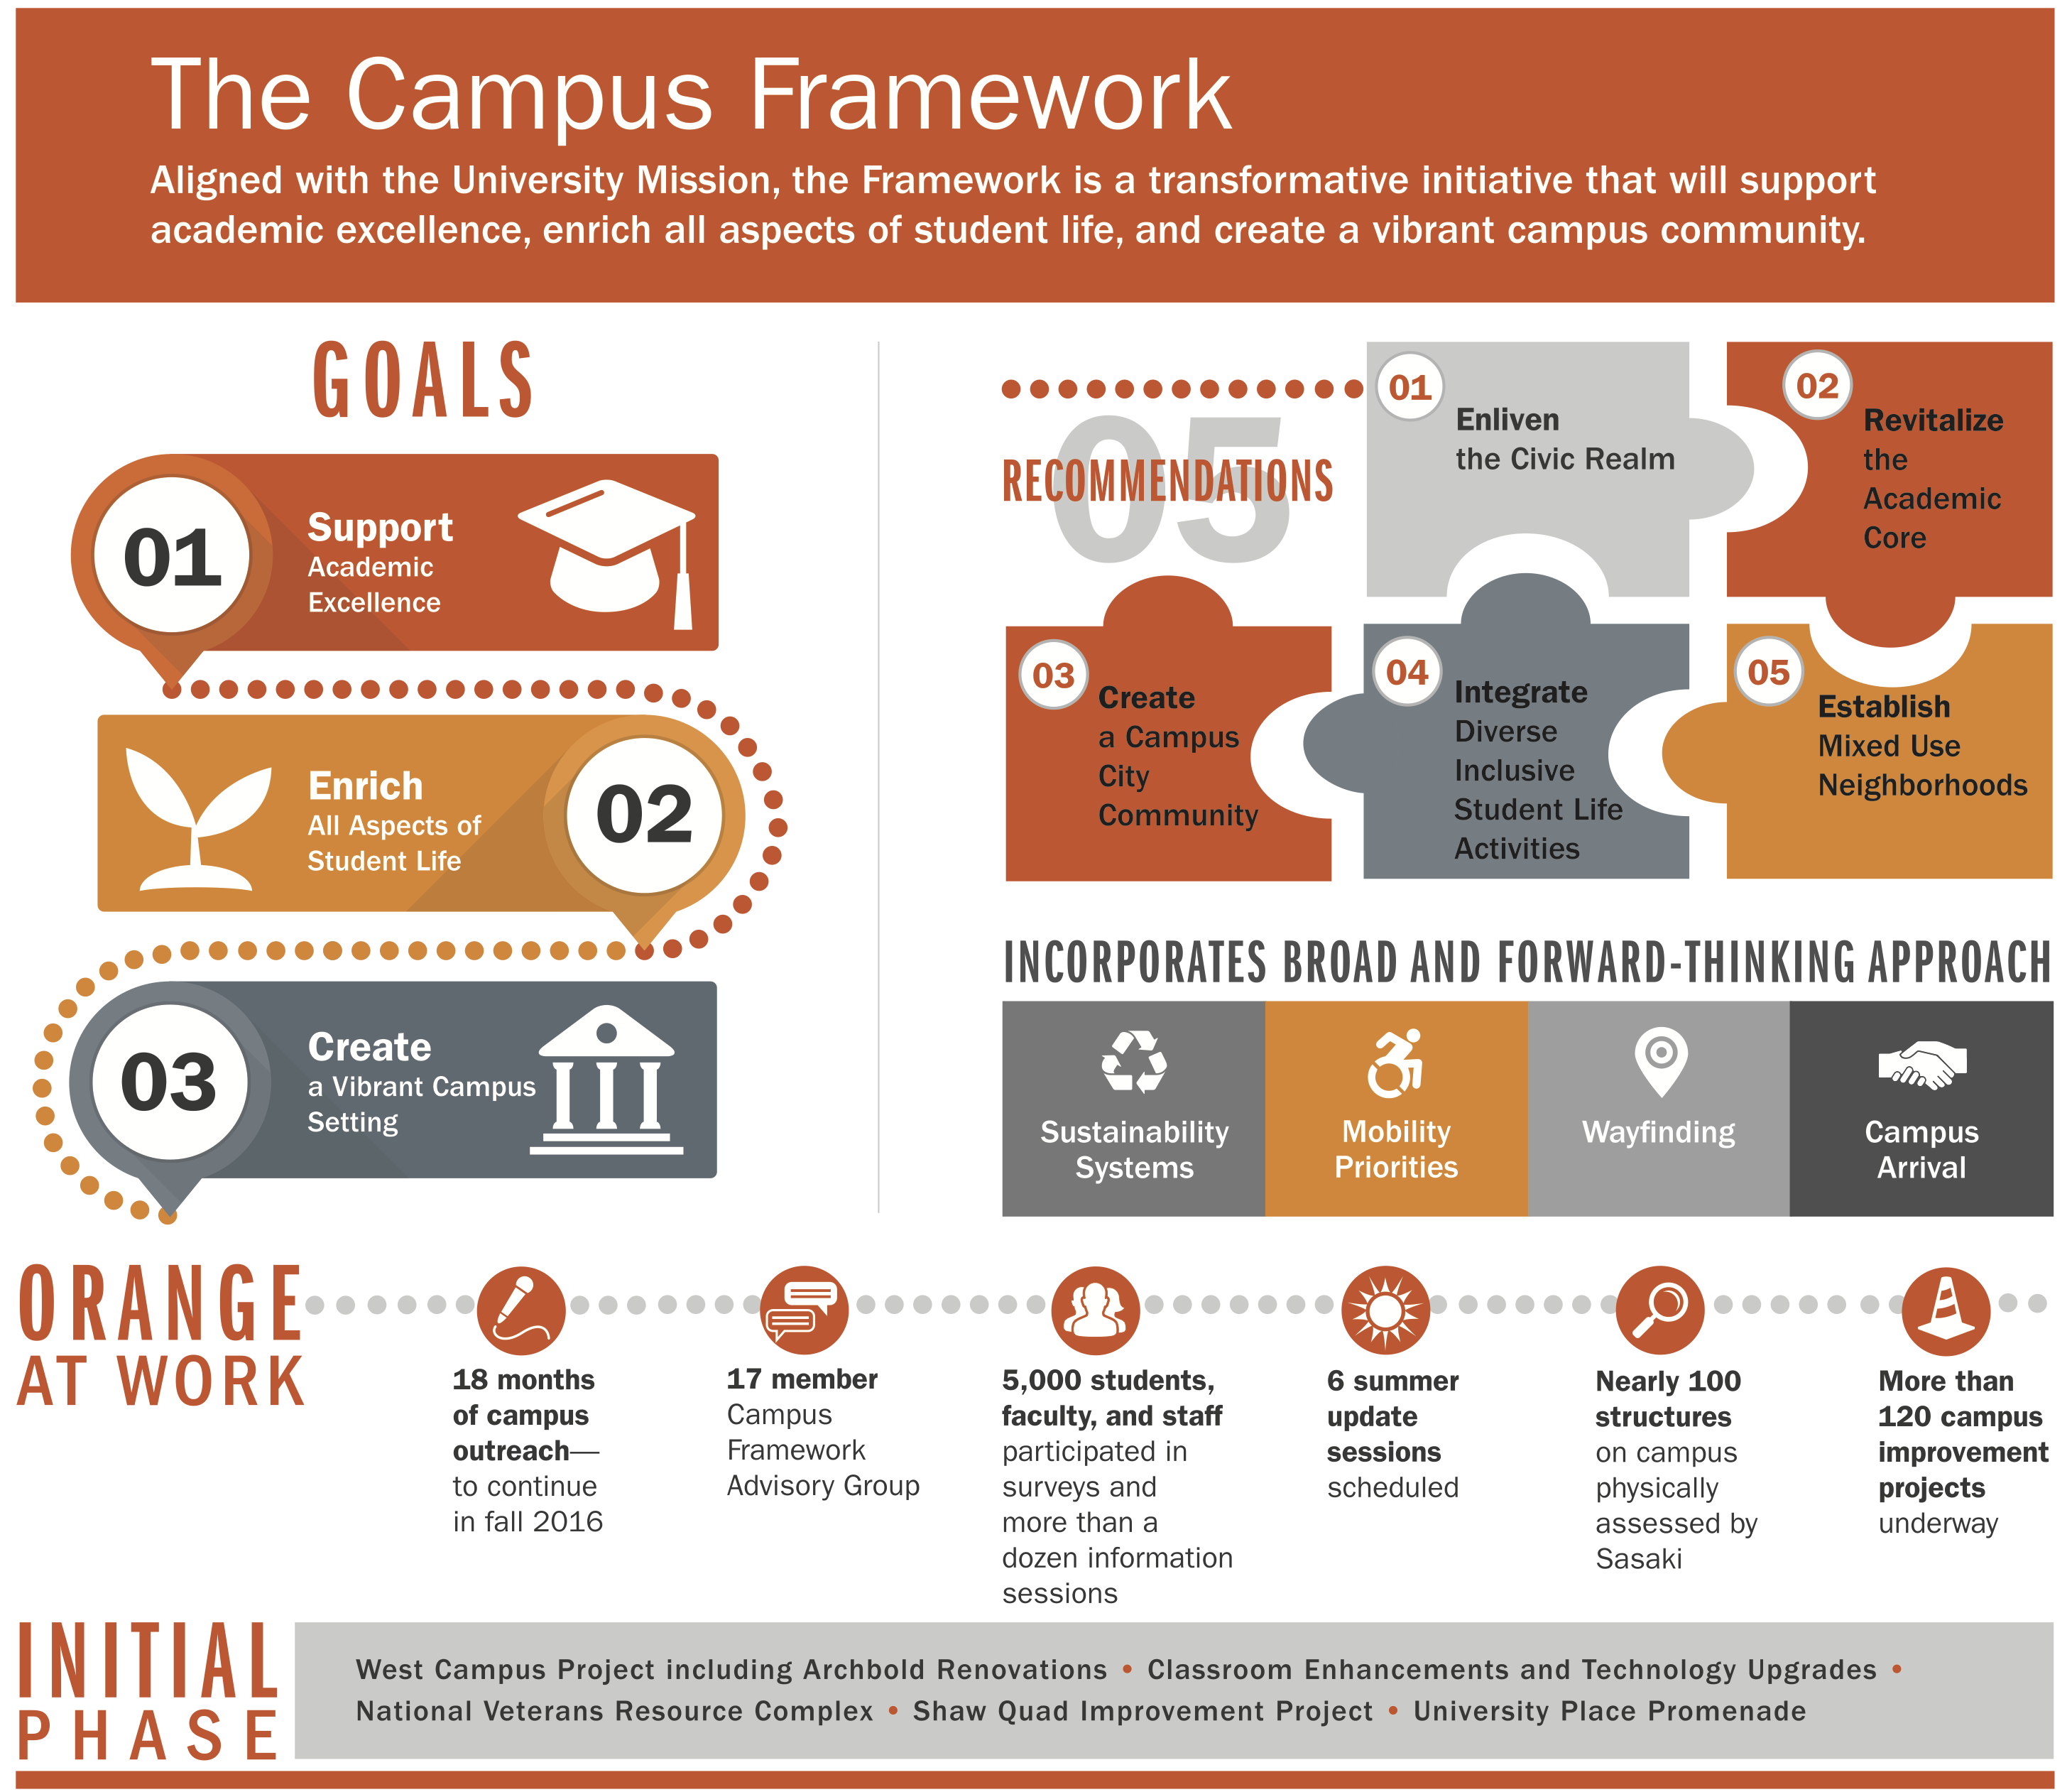 A square image integrates colors, shapes, lines, icons and text to share pertinent information about the Campus Framework Project in a compact and visually appealing way. The infographic is organized into five major sections and uses SU's signature dark Orange, a pale lighter orange and three shades of gray. Within a bold orange rectangle spanning the top of the image, it reads: The Campus Framework, Aligned with the University Mission, the Framework is a transformative initiative that will support academic excellence, enrich all aspects of student life and create a vibrant campus community. Three sections are situated under the headlining section. Goals are repeated from the headlining sentence to the left reading downward. To the right of these restated goals are five recommendations in the shape of puzzle pieces linked in succession: 1. Enliven the Civic Realm, 2. Revitalize the Academic Core, 3. Create a Campus City Community, 4. Integrate Diverse Inclusive Student Life Activities, and 5. Establish Mixed-Use Neighborhoods. An accessible version is available as a Word Document. A PDF is also available.